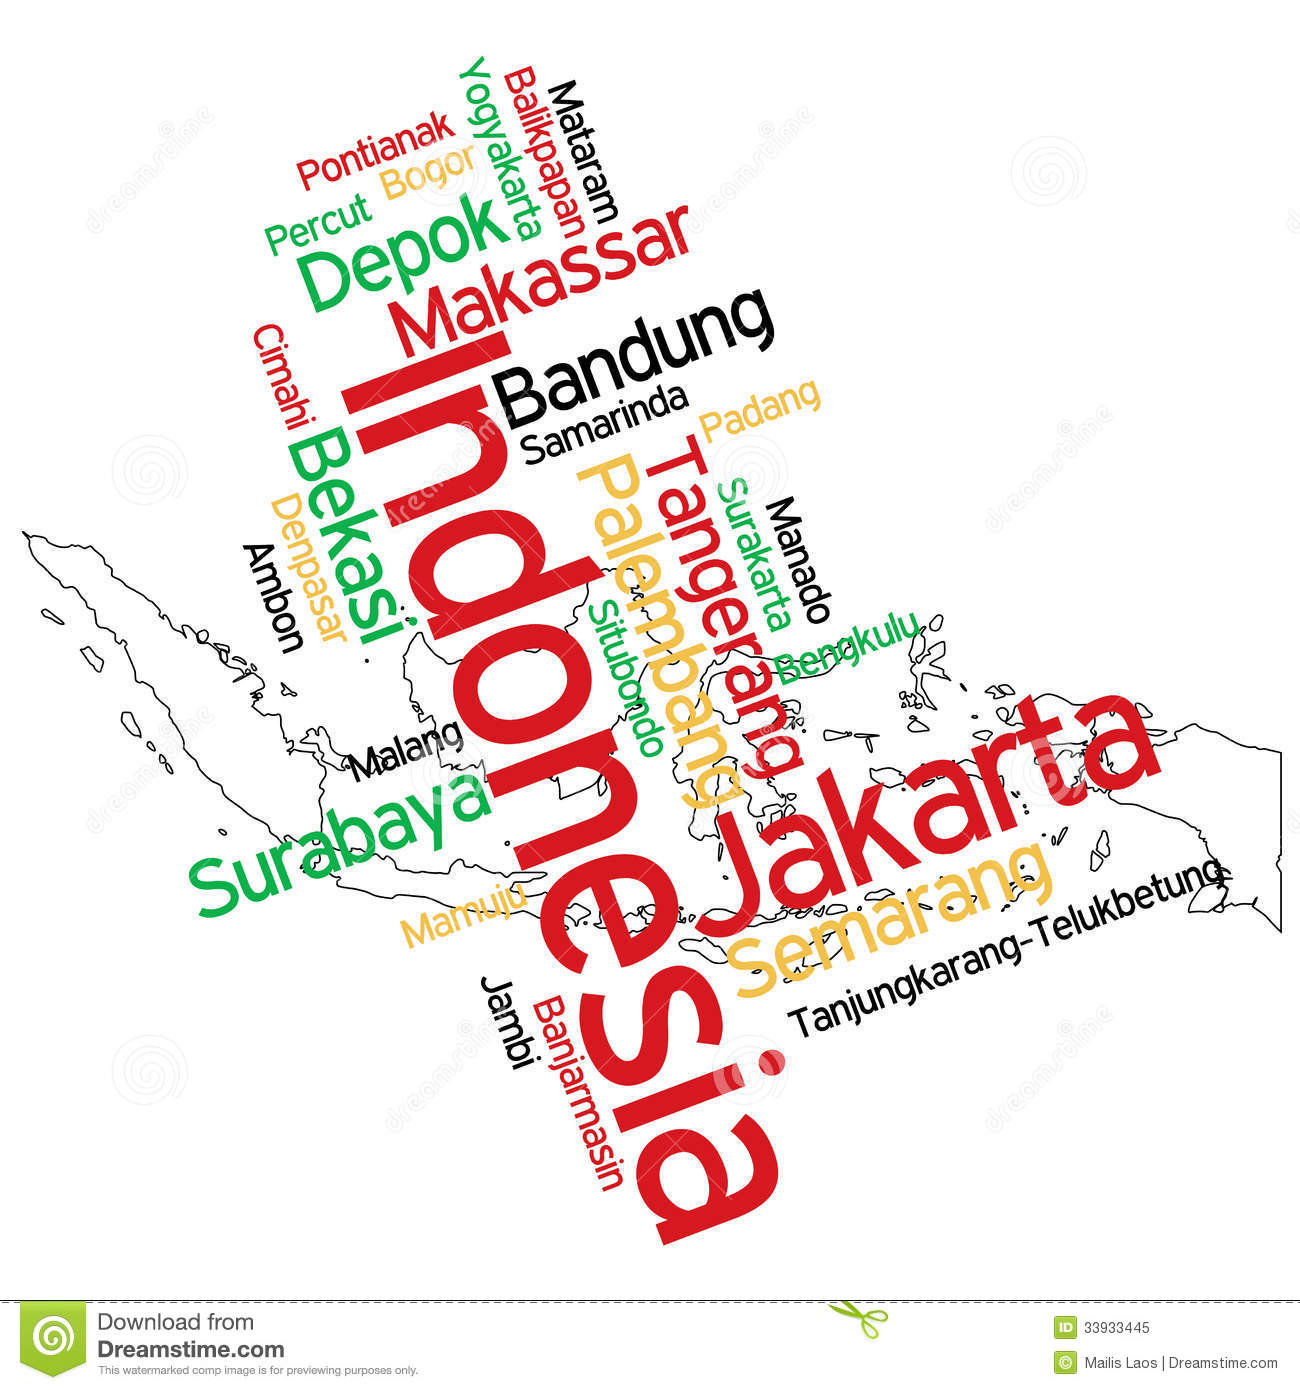 Indonesia Map And Cities Royalty Free Stock Photo - Image: 33933445